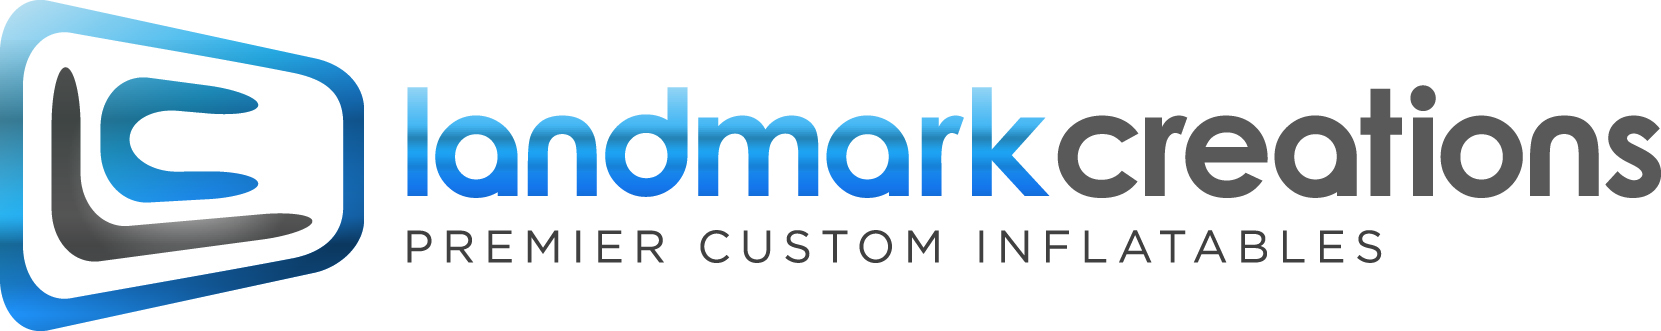 Landmark Creations | Premier Custom Inflatables